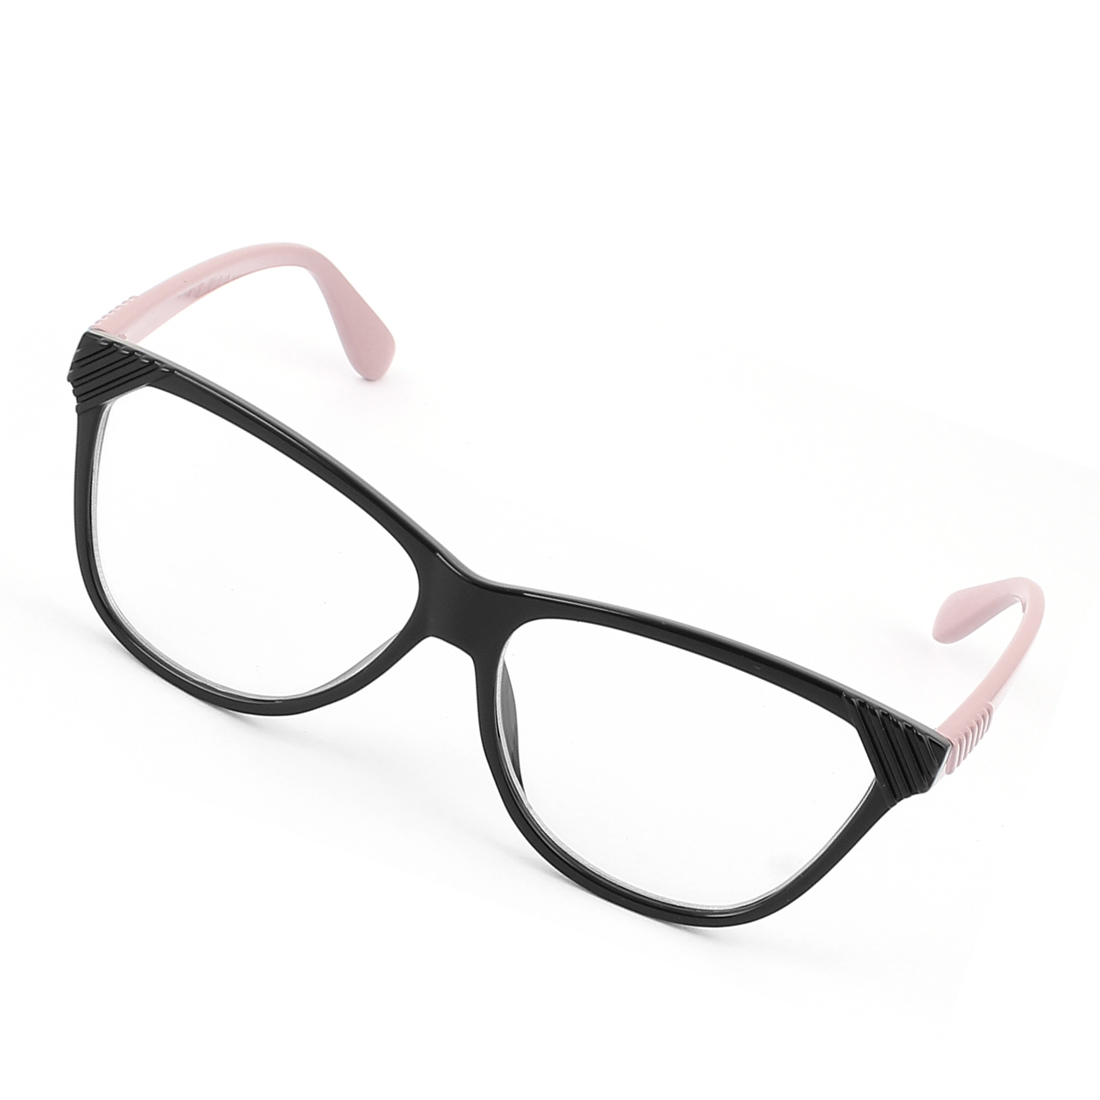 Plastic Arm Single Bridge Clear Lens Plain Glasses Eyeglasses Plano Spectacles Coral Pink